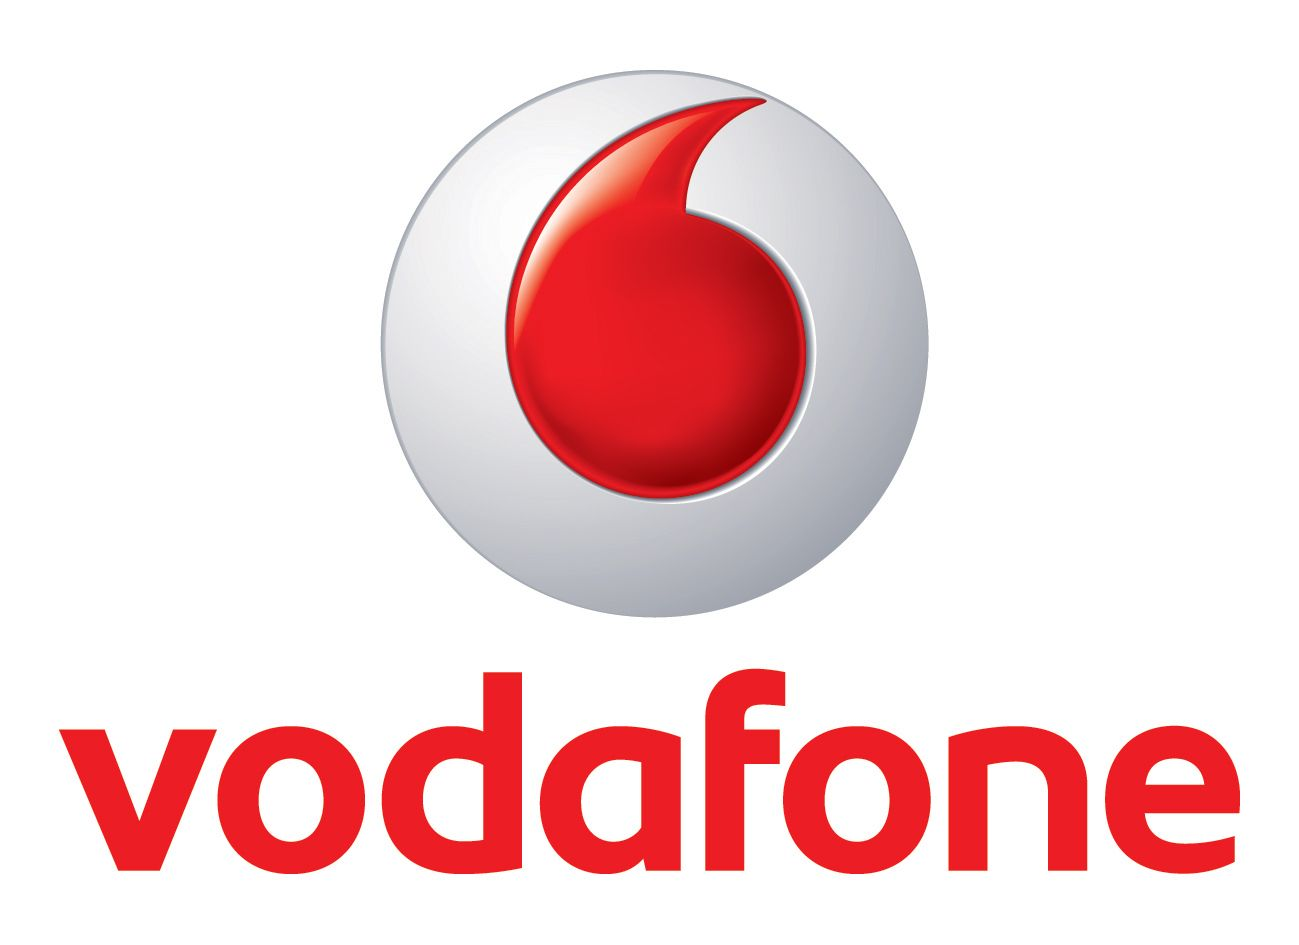 Vodafone, Blackout di Due Ore